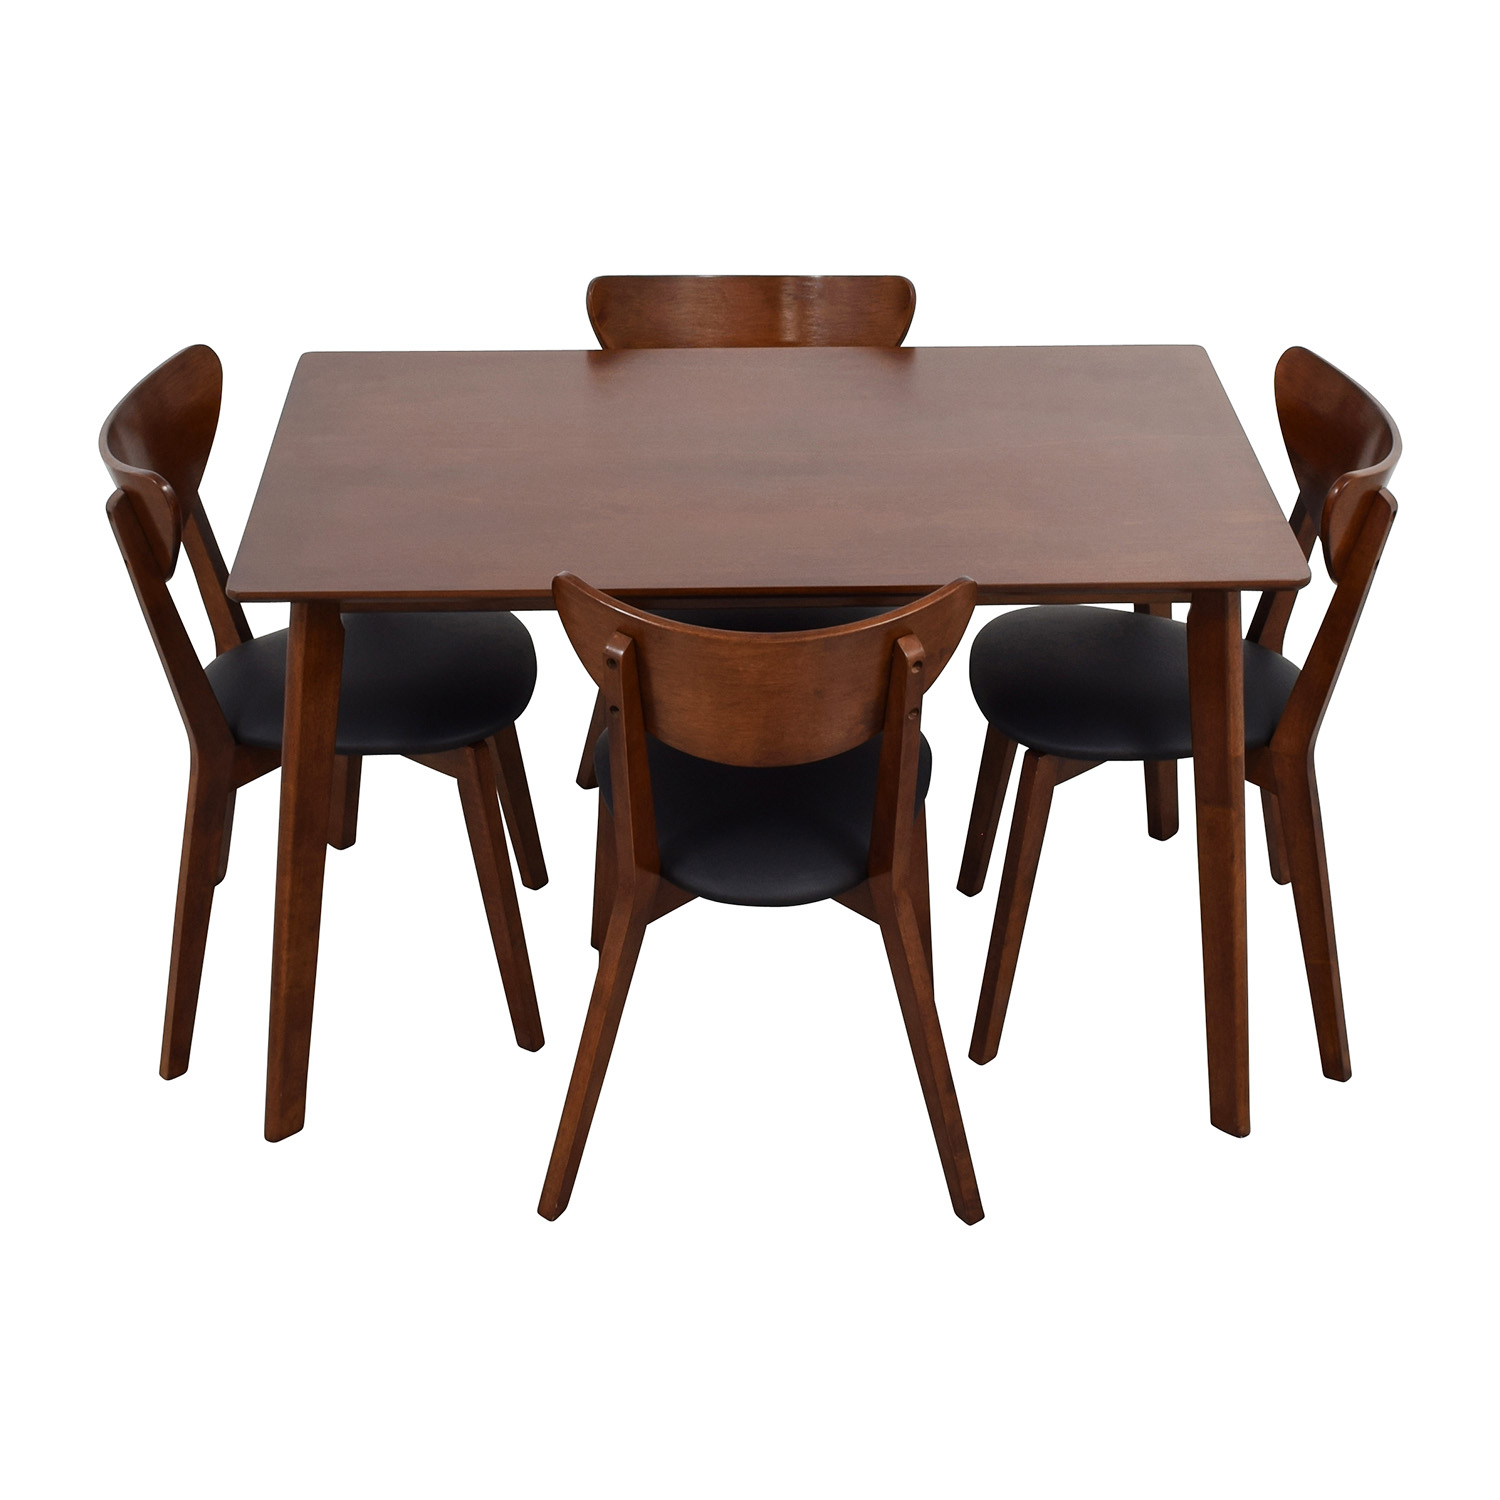 35 off wholesale interiors brown dining table set with for Furniture wholesale